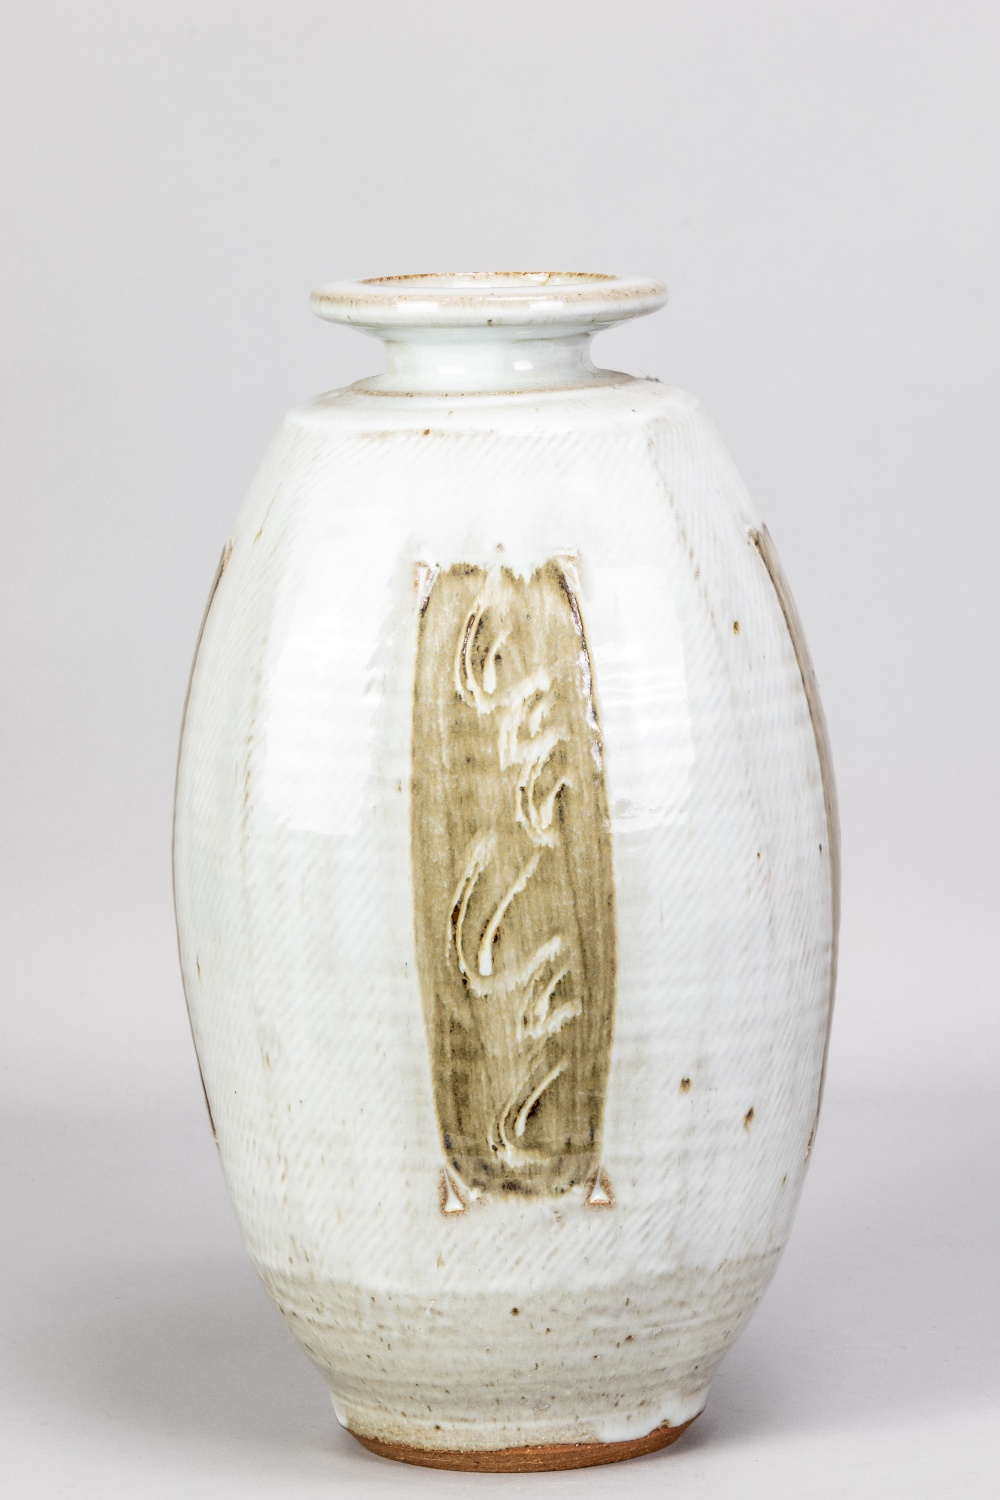 WILLIAM PLUMPTRE (born 1959); a tall stoneware bottle covered in braided white glaze decorated